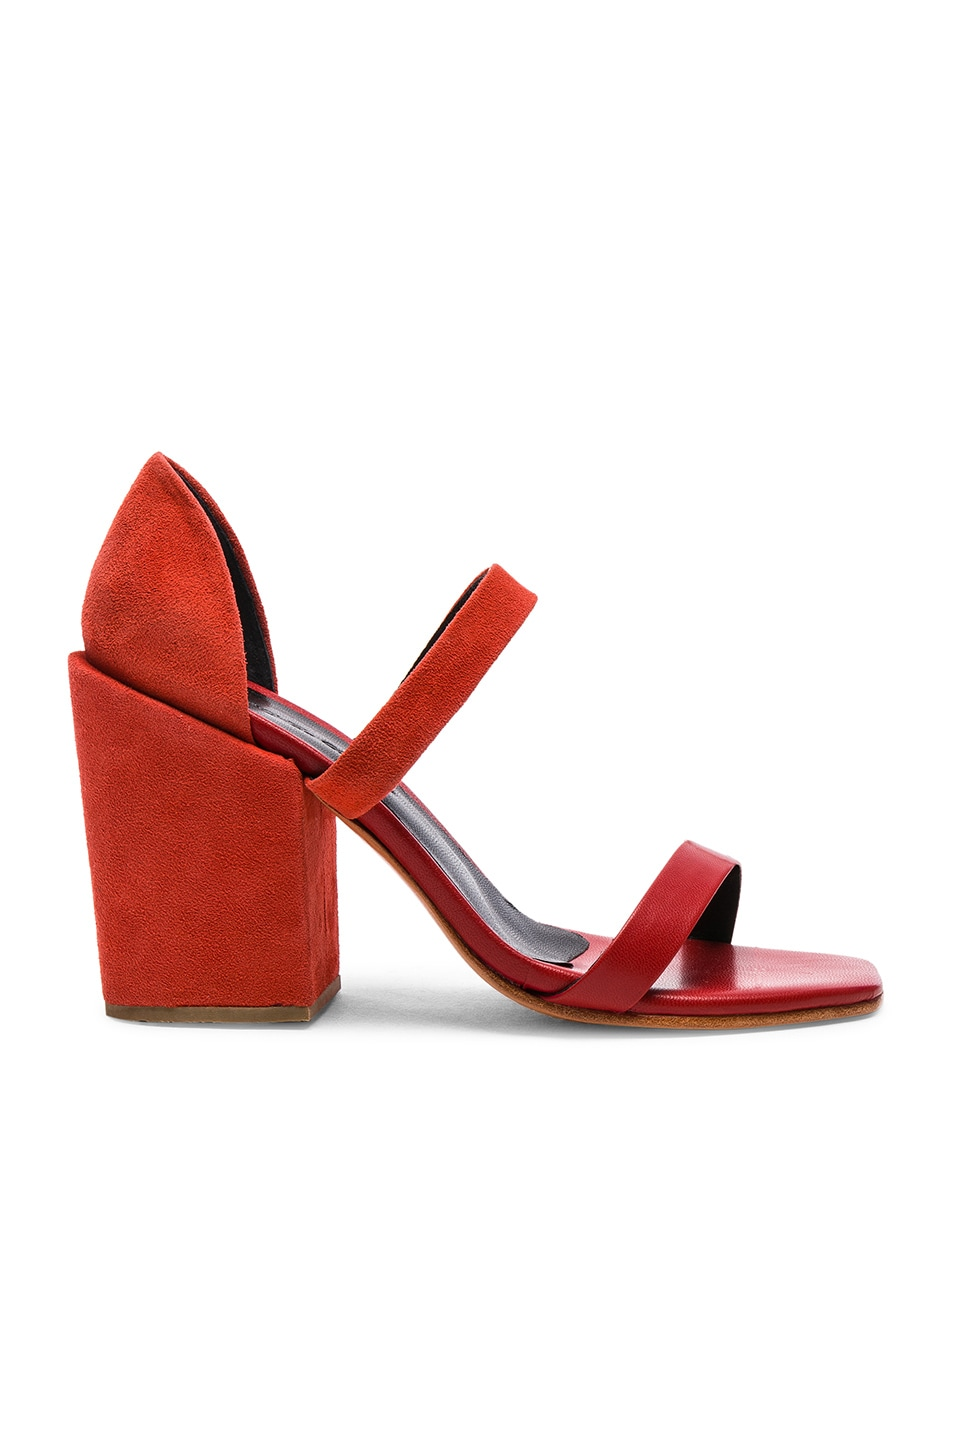 RACHEL COMEY LICO HEEL IN ORANGE